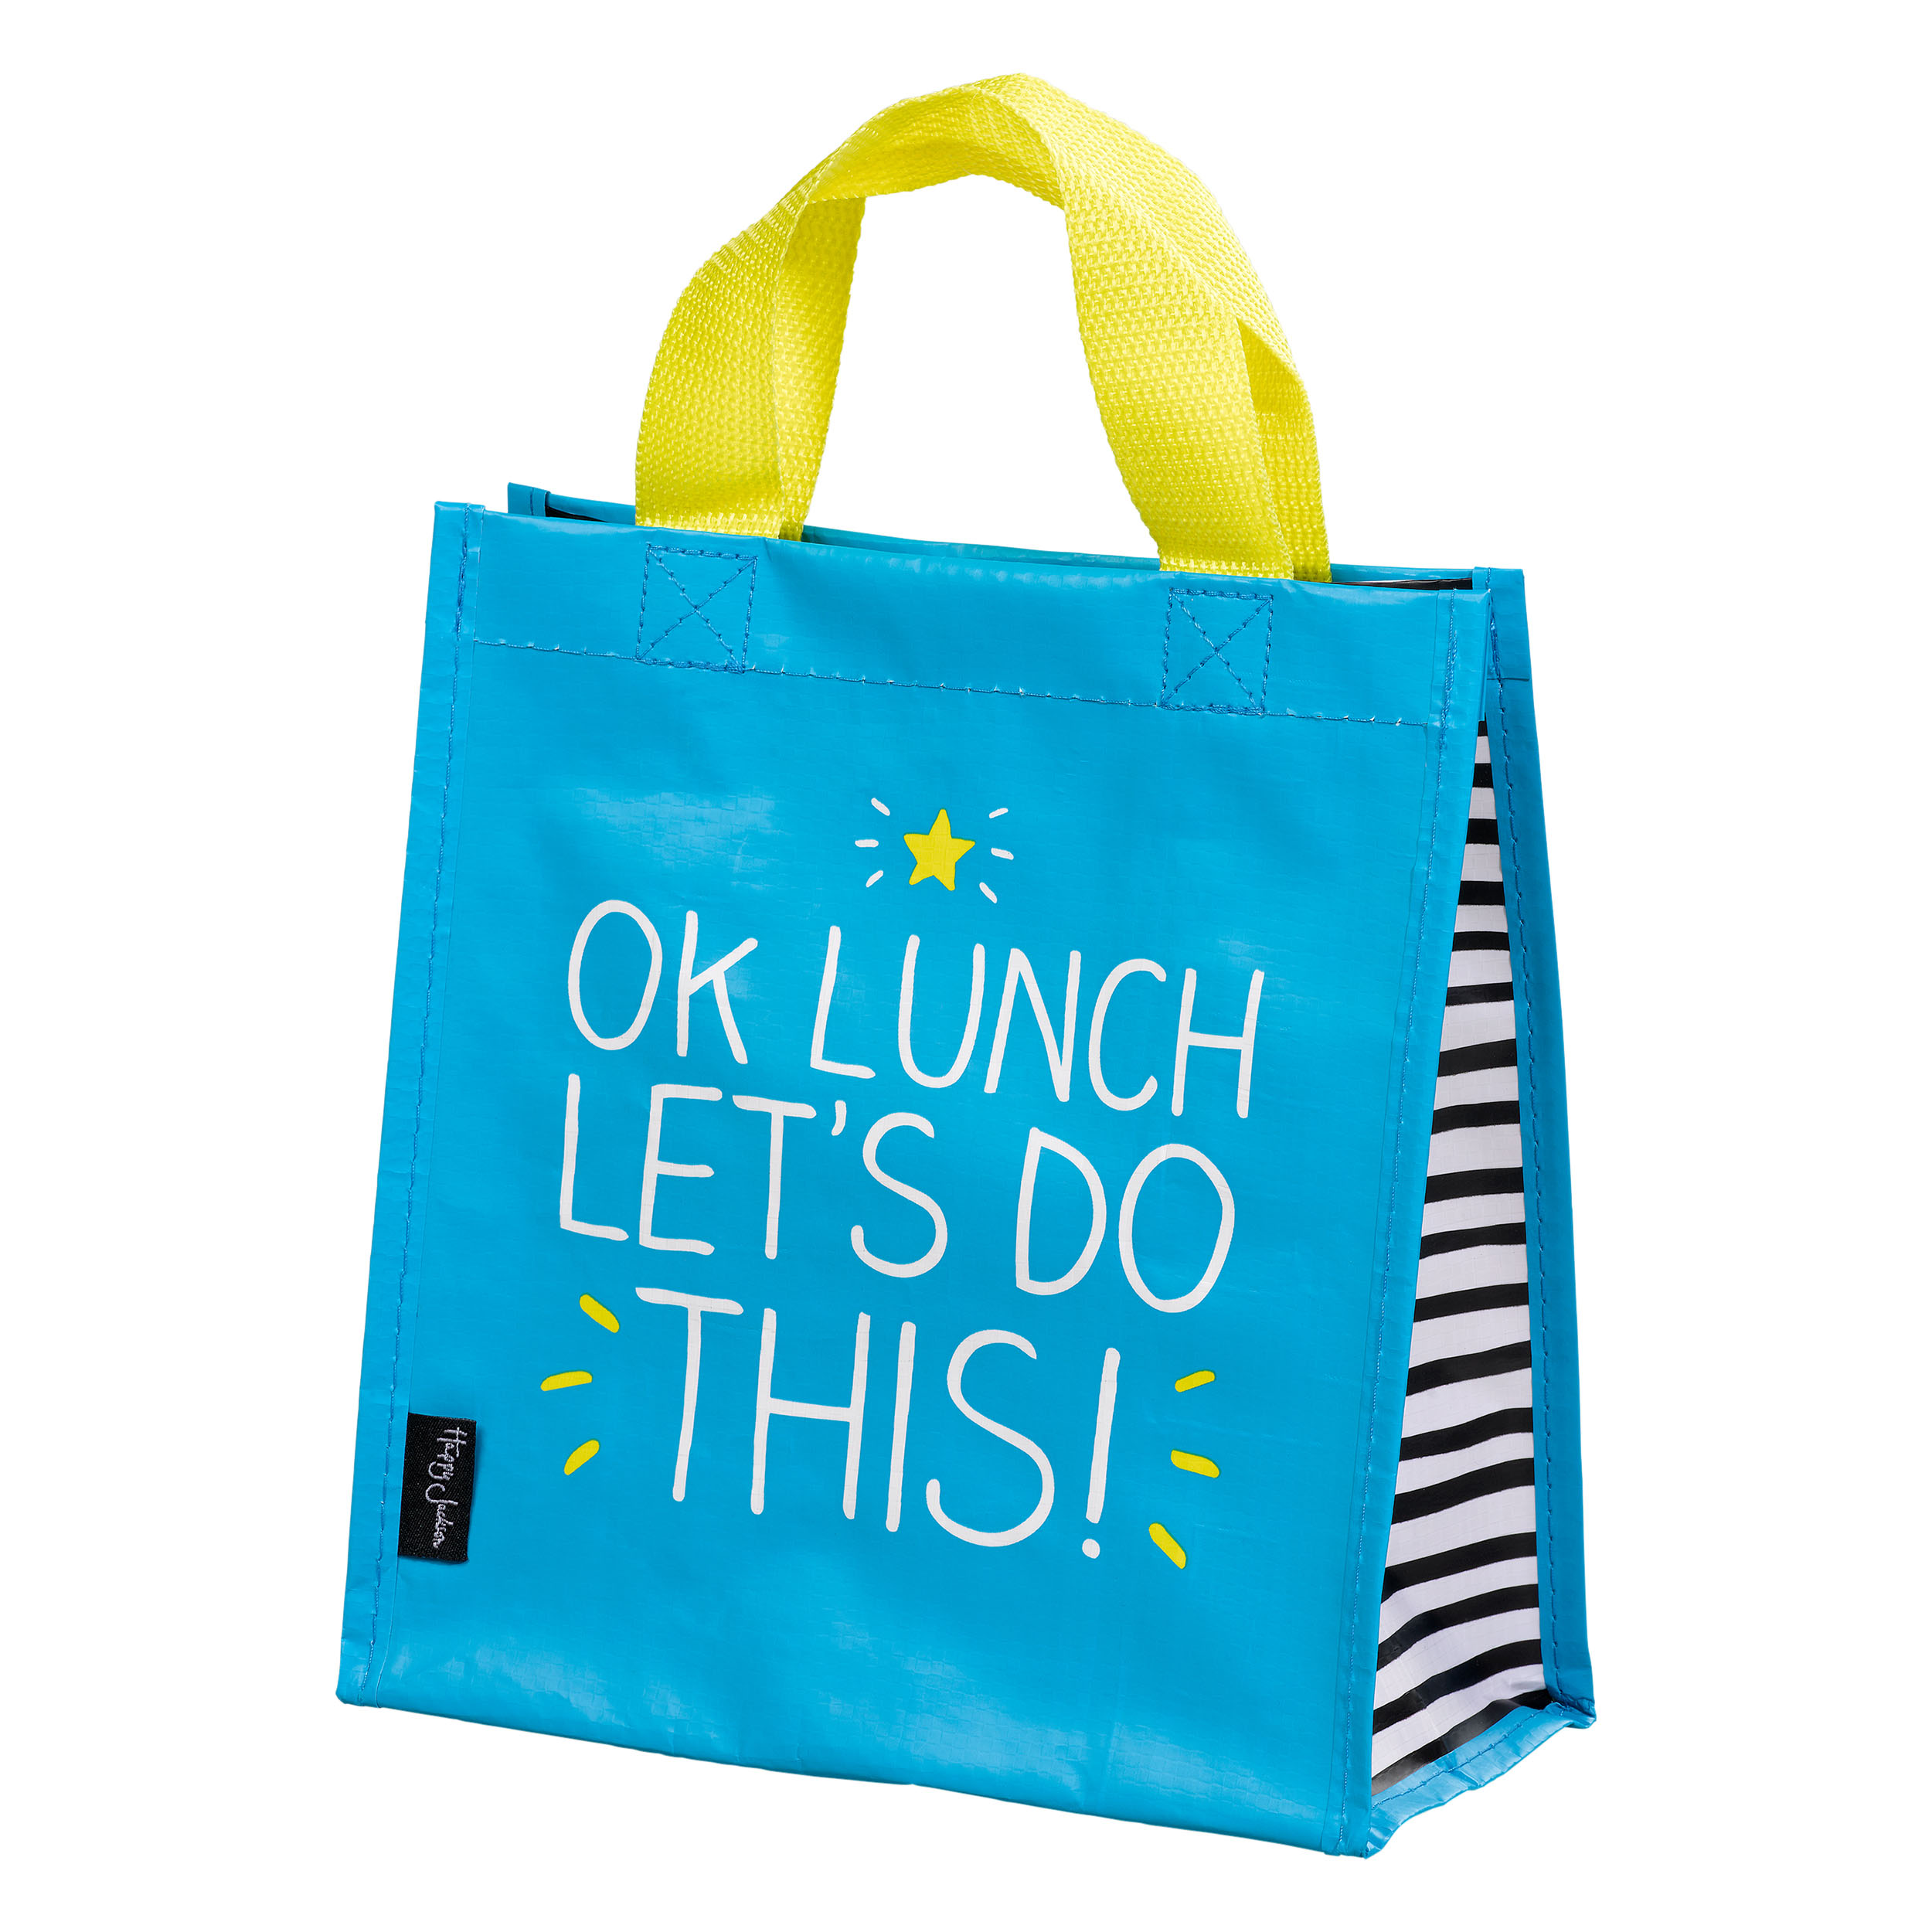 Ok Lunch' Tote Bag